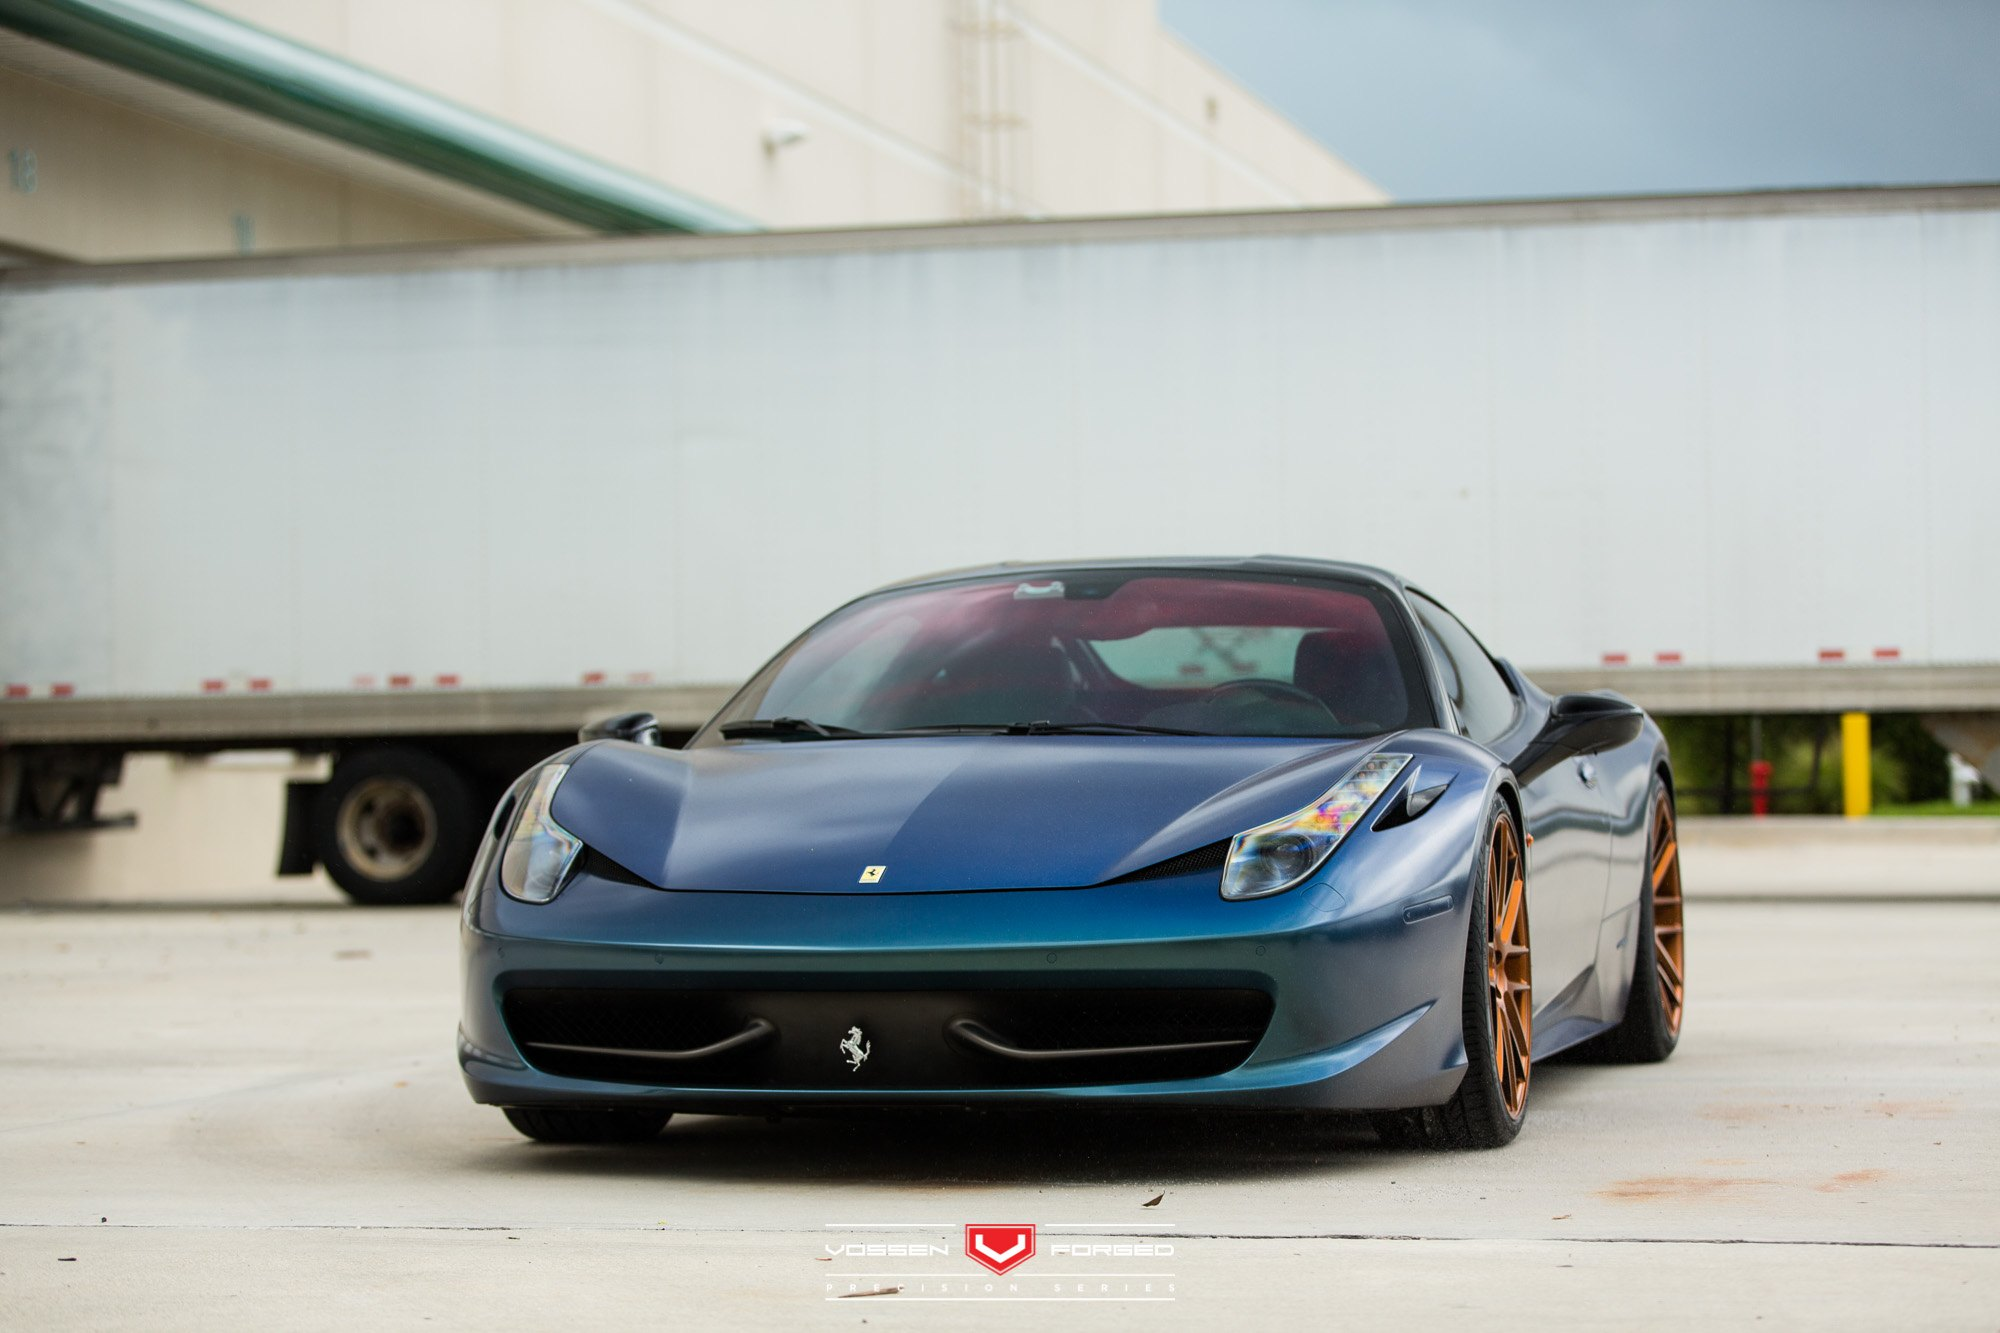 custom painted blue pearl: ferrari 458 fitted with accessories